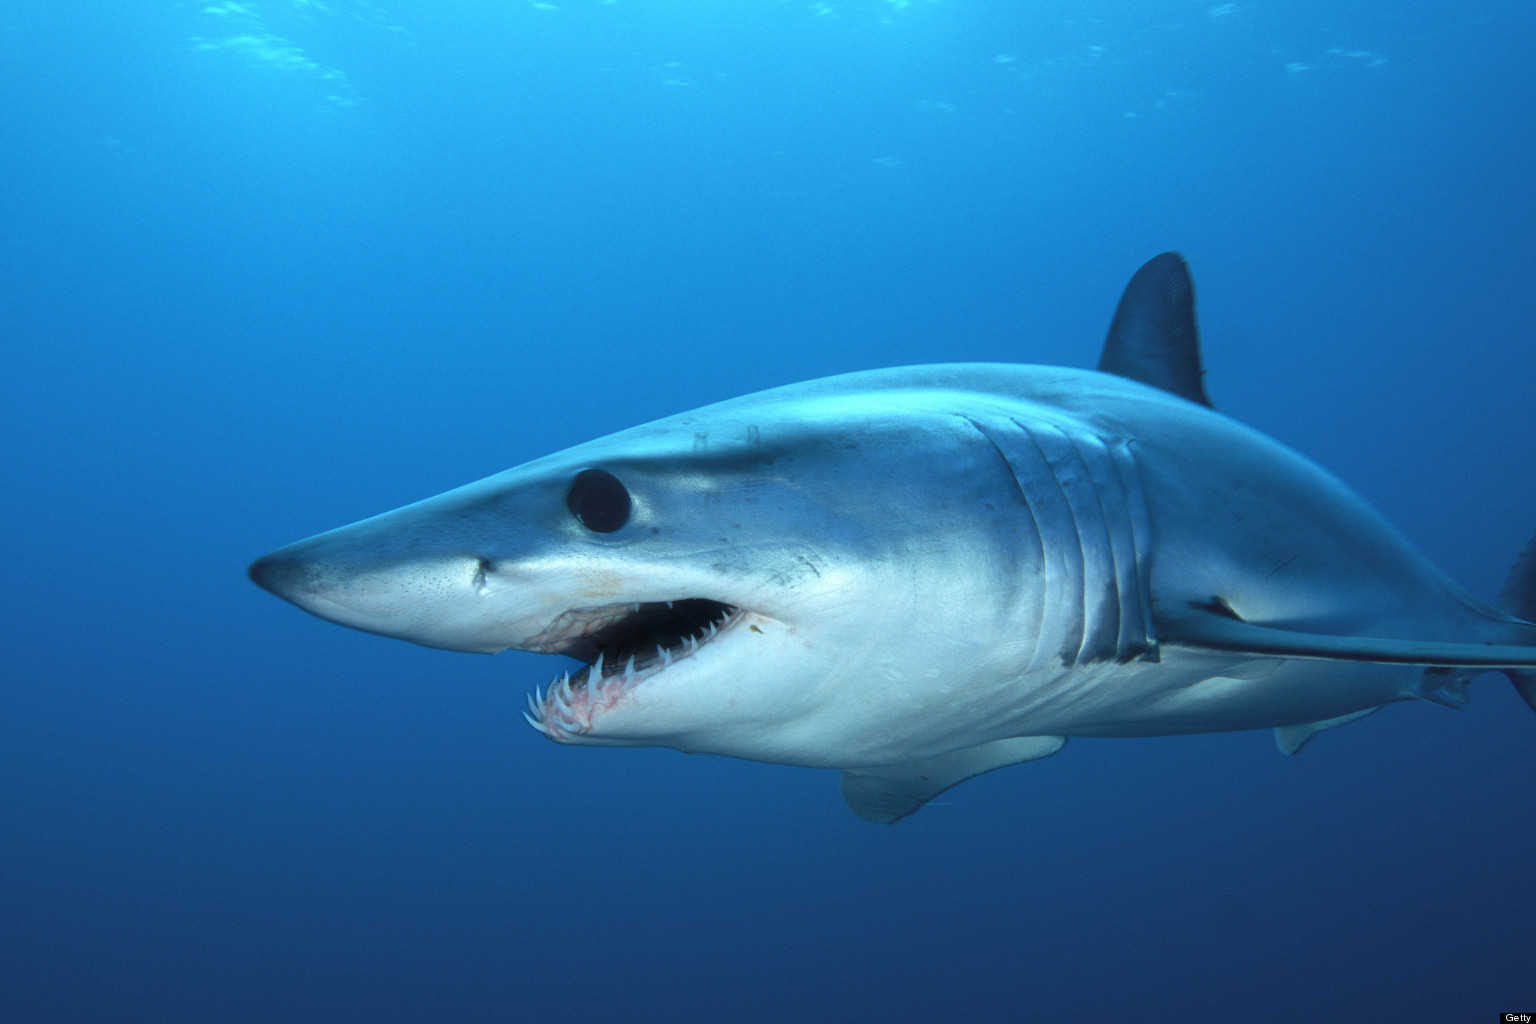 Images of Shark Jumping Out Of Water With Mouth Open - www